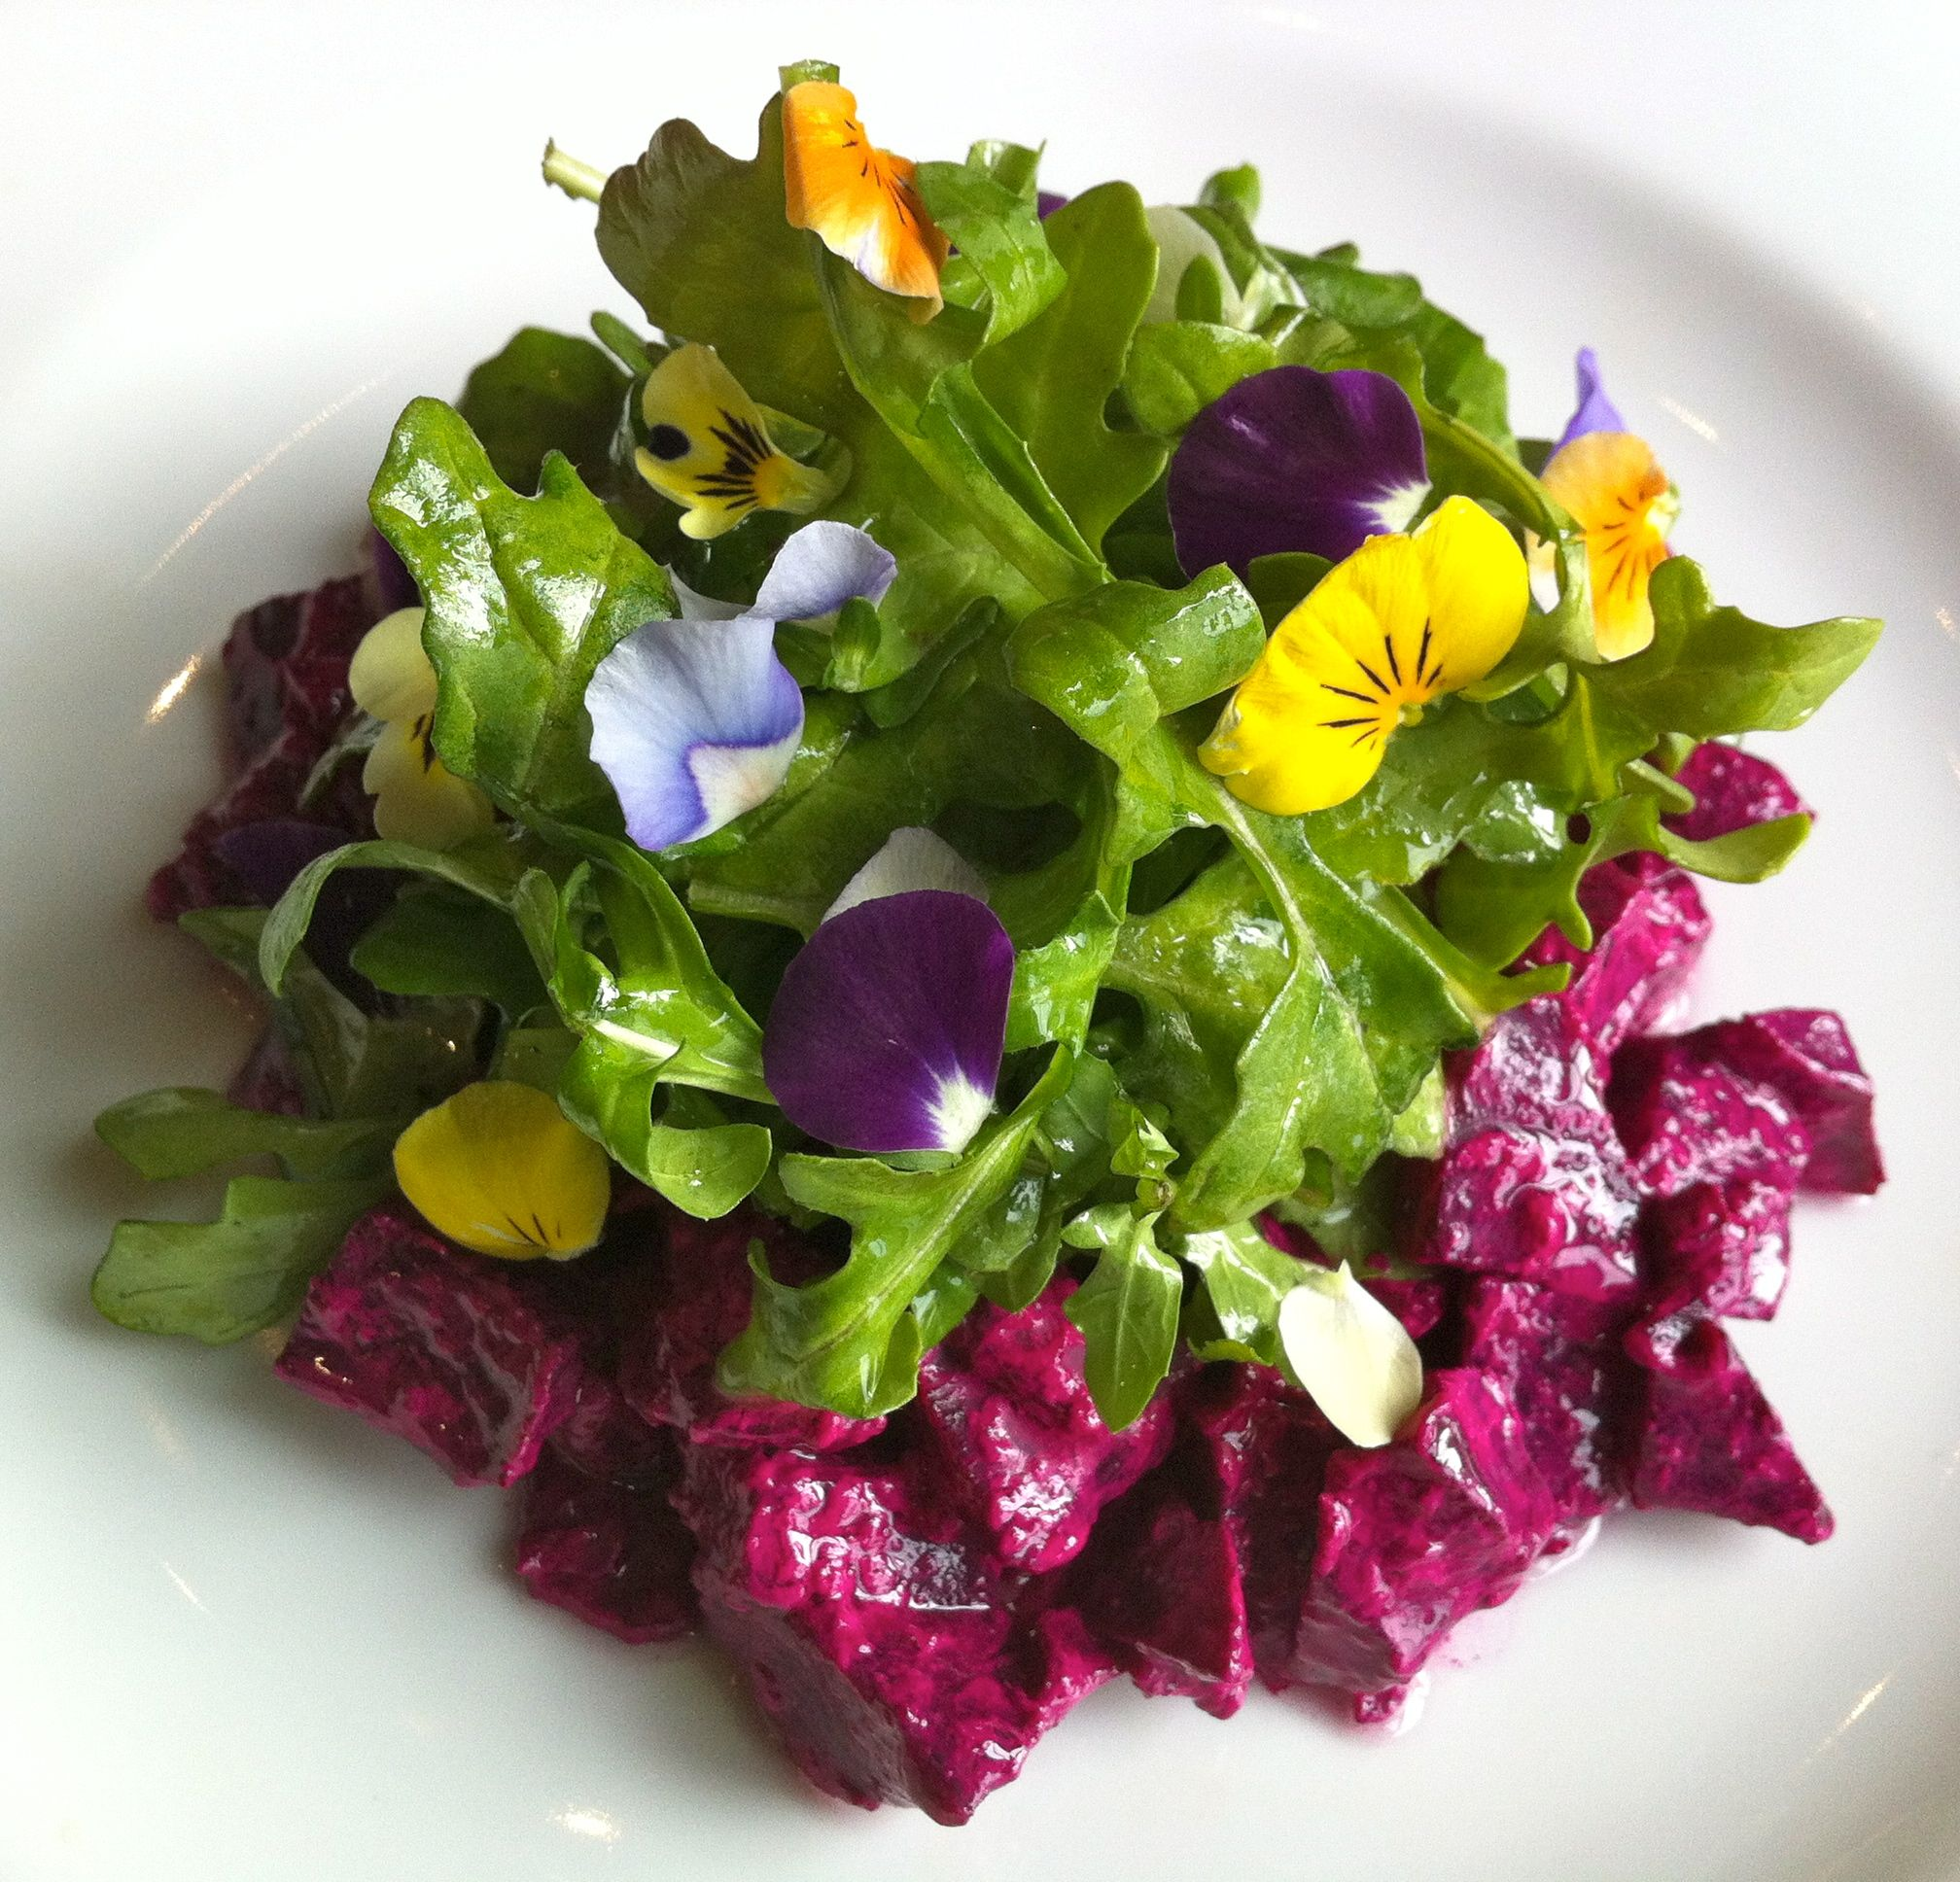 Mother Earth salad at Unforked in Overland Park, Kansas (ATE).  roasted beets marinated in creamy tarragon dressing topped with baby arugula (tossed in flaxseed oil) & edible flowers